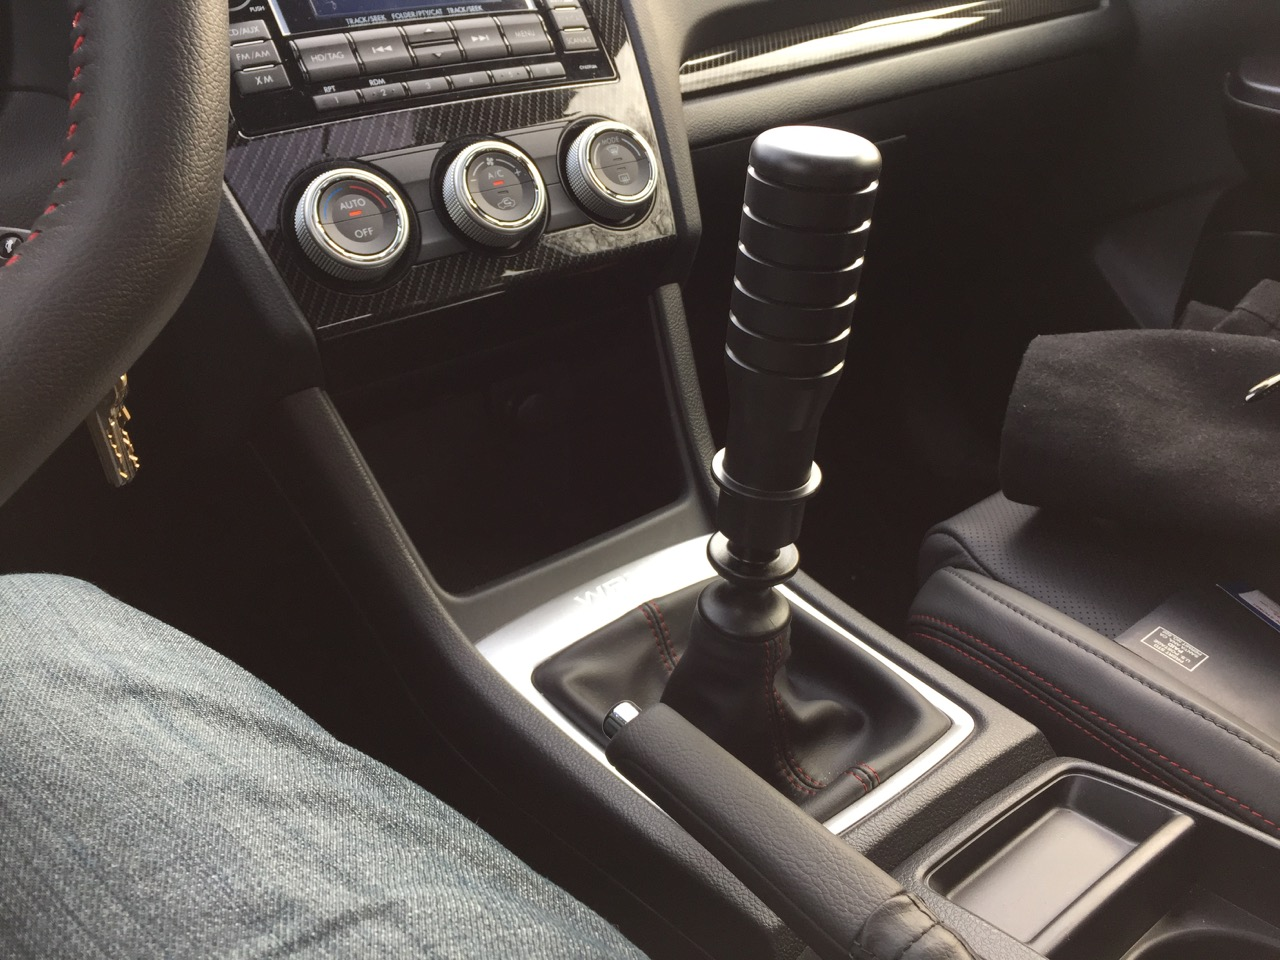 Sneed4speed Billy Club Shift Knob Review